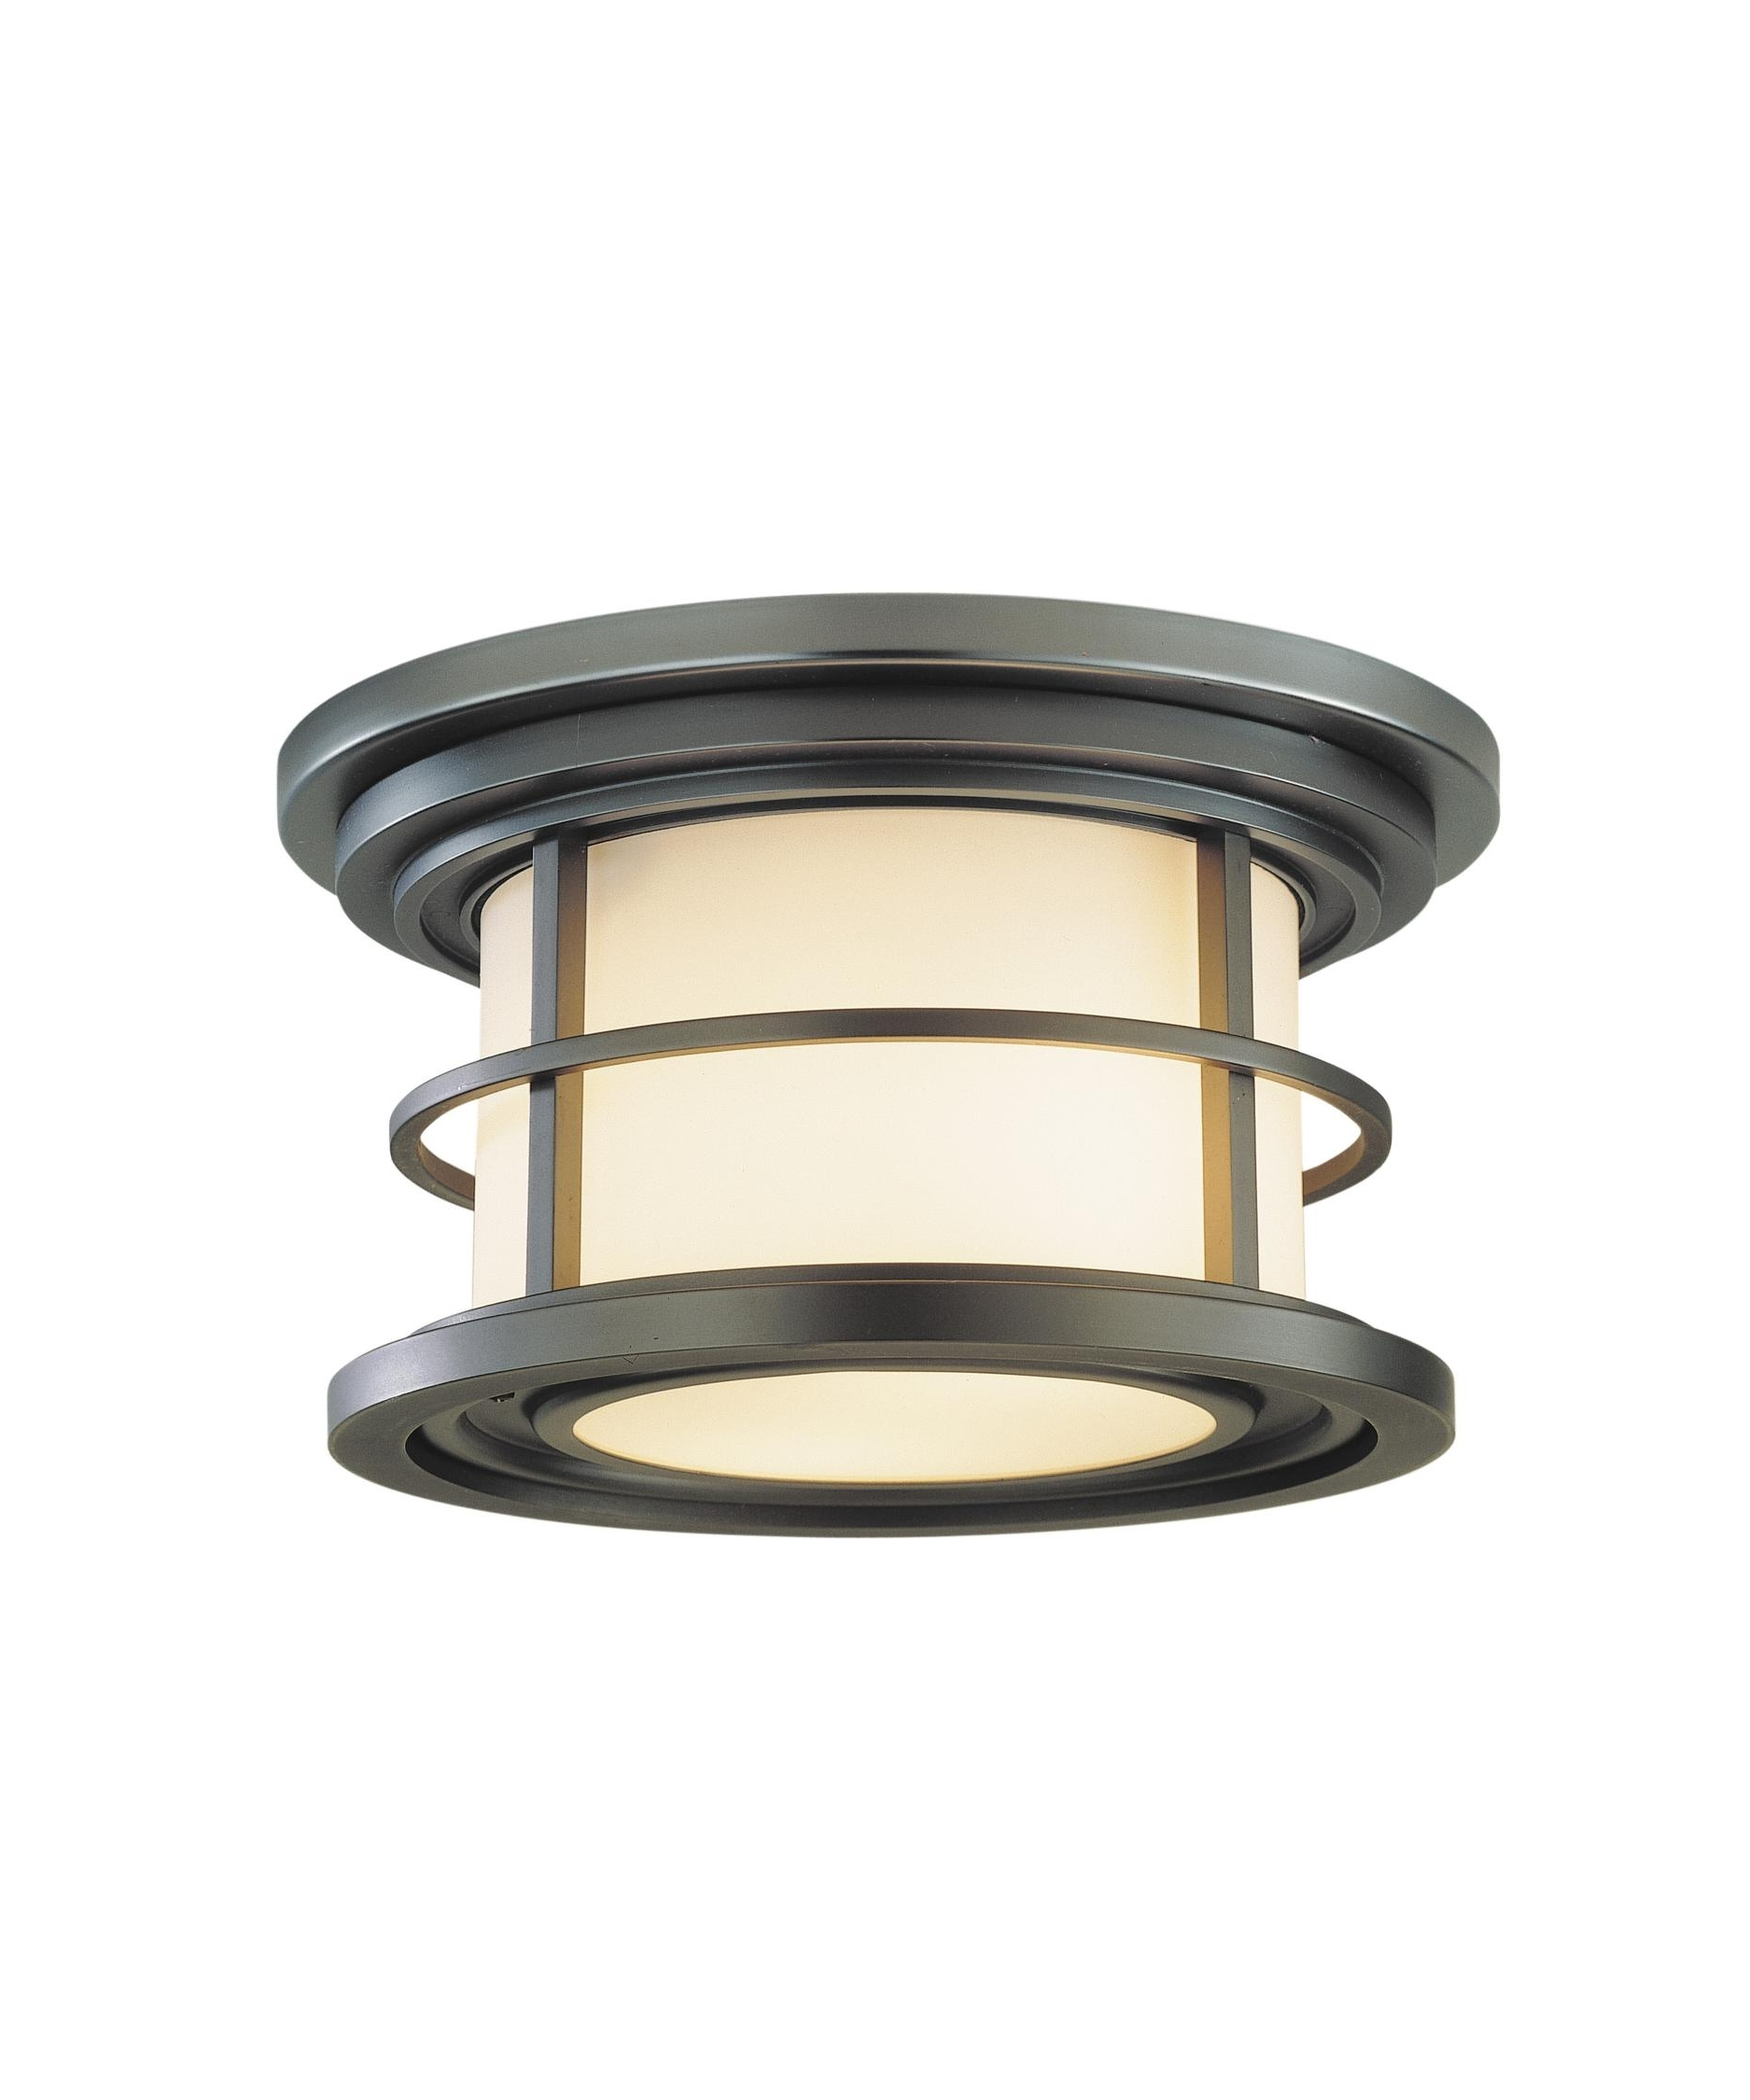 2018 Murray Feiss Ol2213 Lighthouse 10 Inch Wide 2 Light Outdoor Flush For Commercial Outdoor Ceiling Lights (Gallery 6 of 20)